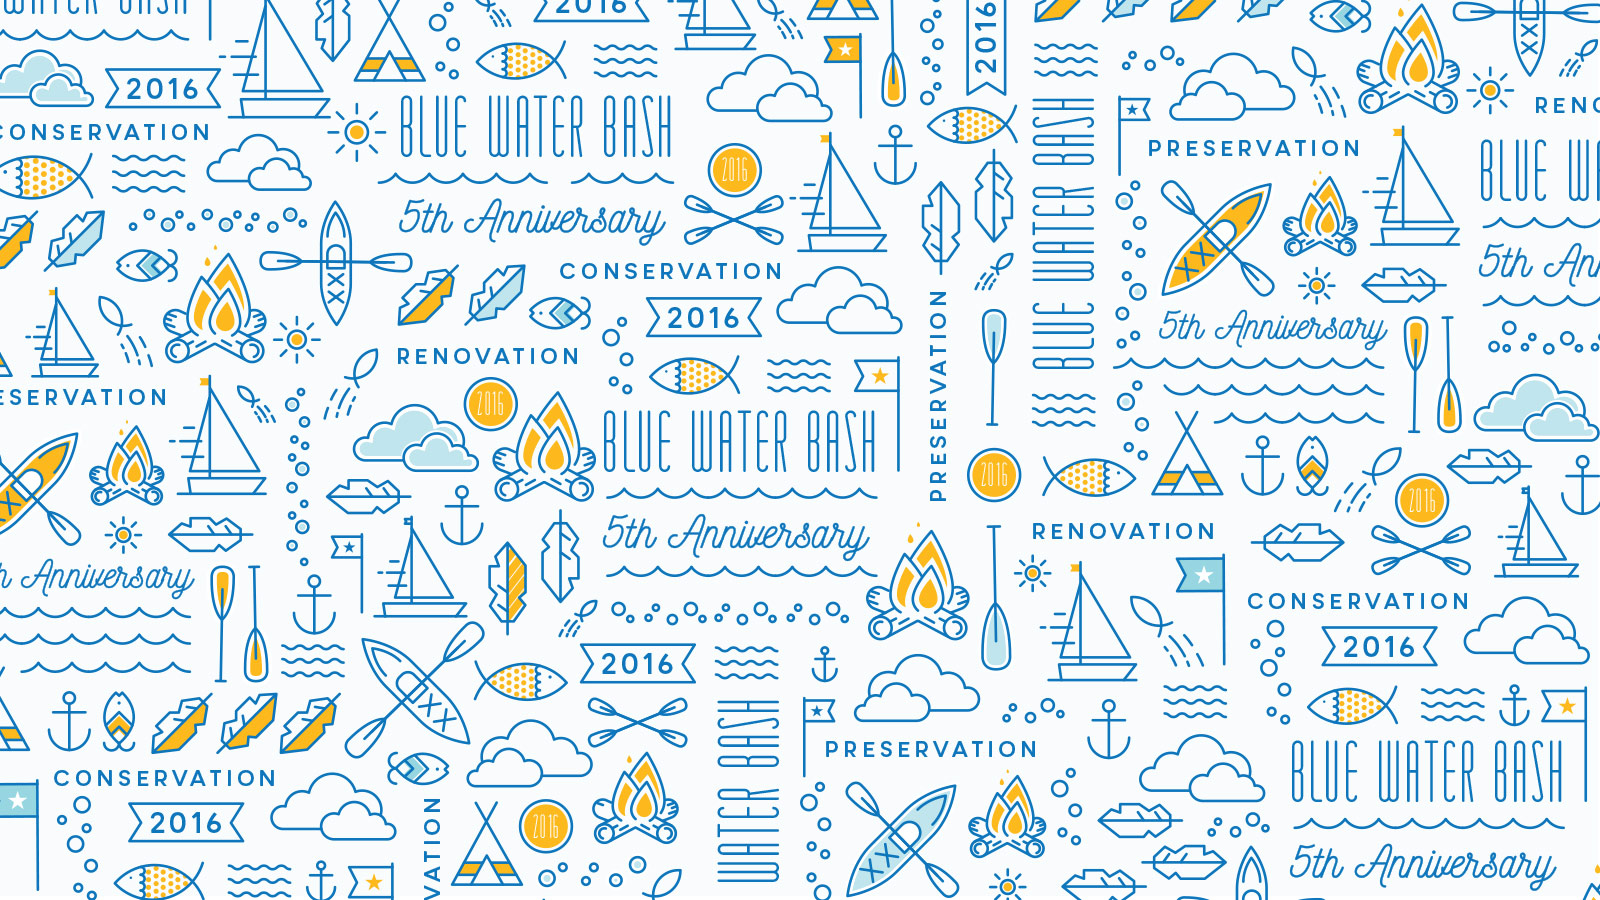 Boys Town Blue Water Bash Pattern